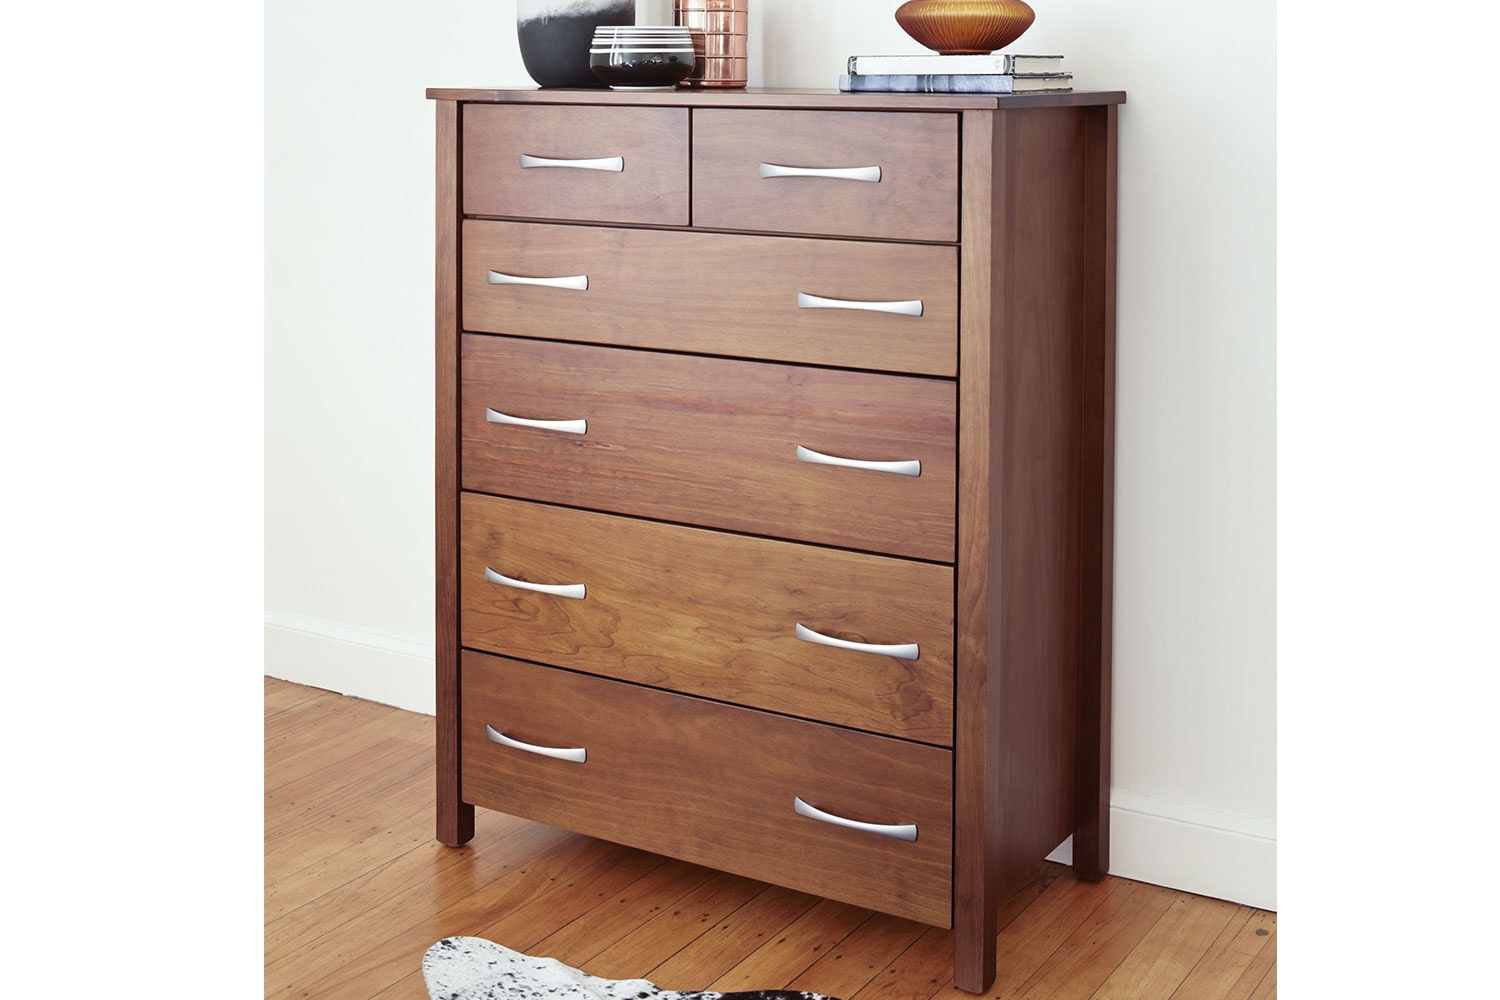 Tillsdale 6 Drawer Tallboy by Coastwood Furniture